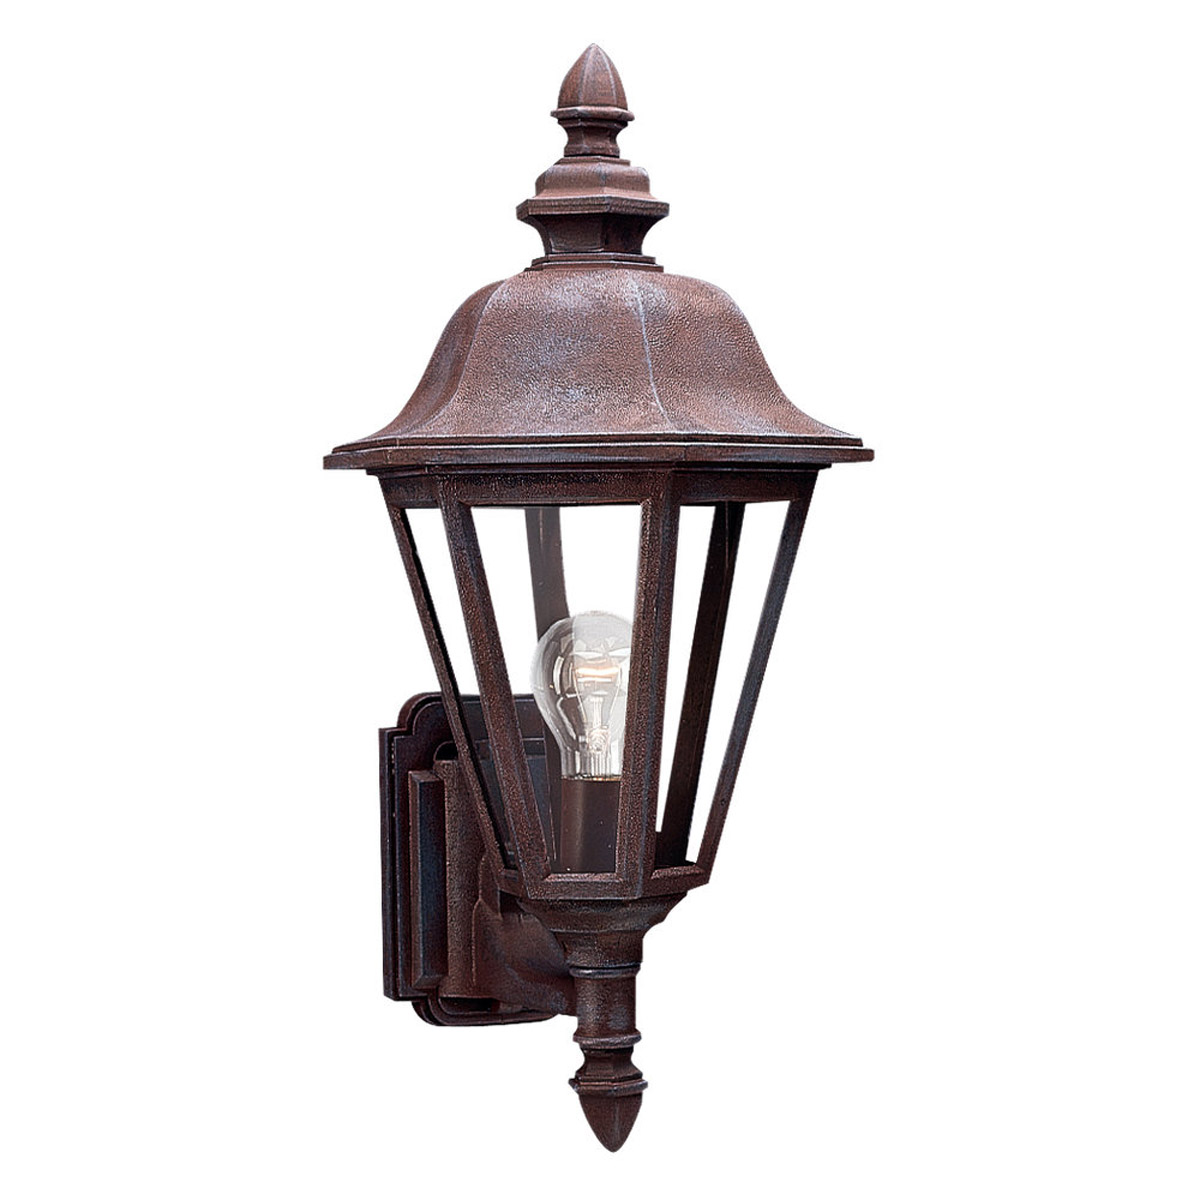 Sea Gull Lighting Brentwood 1 Light Outdoor Wall Lantern in Sienna 8824-26